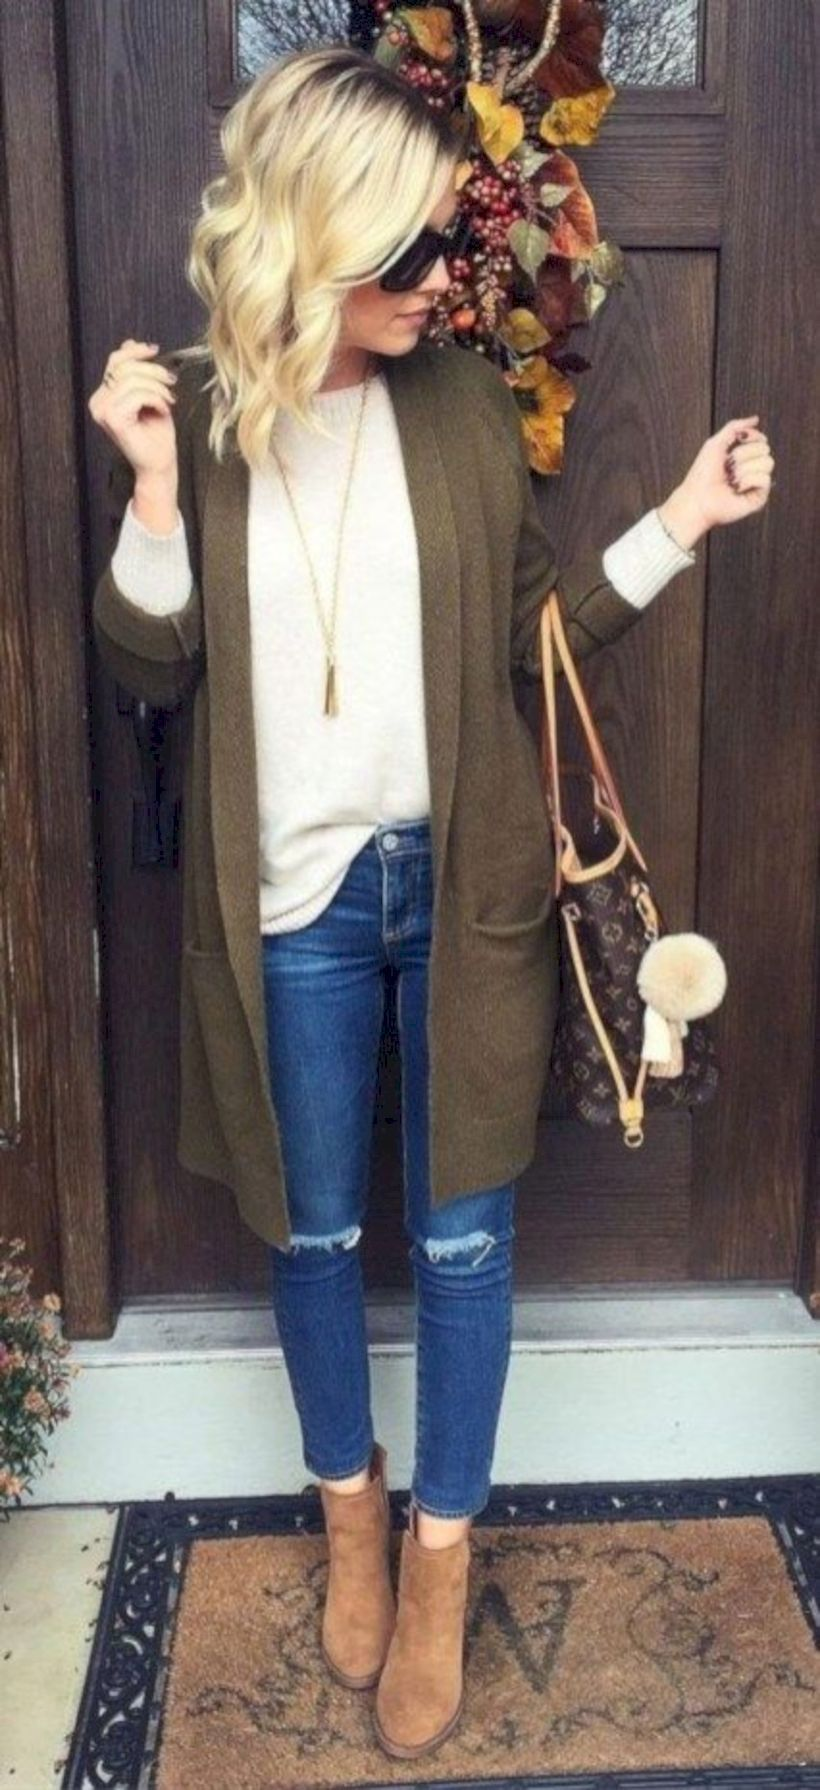 72371f82977 Stylist Cardigan Outfit Ideas For Women 48